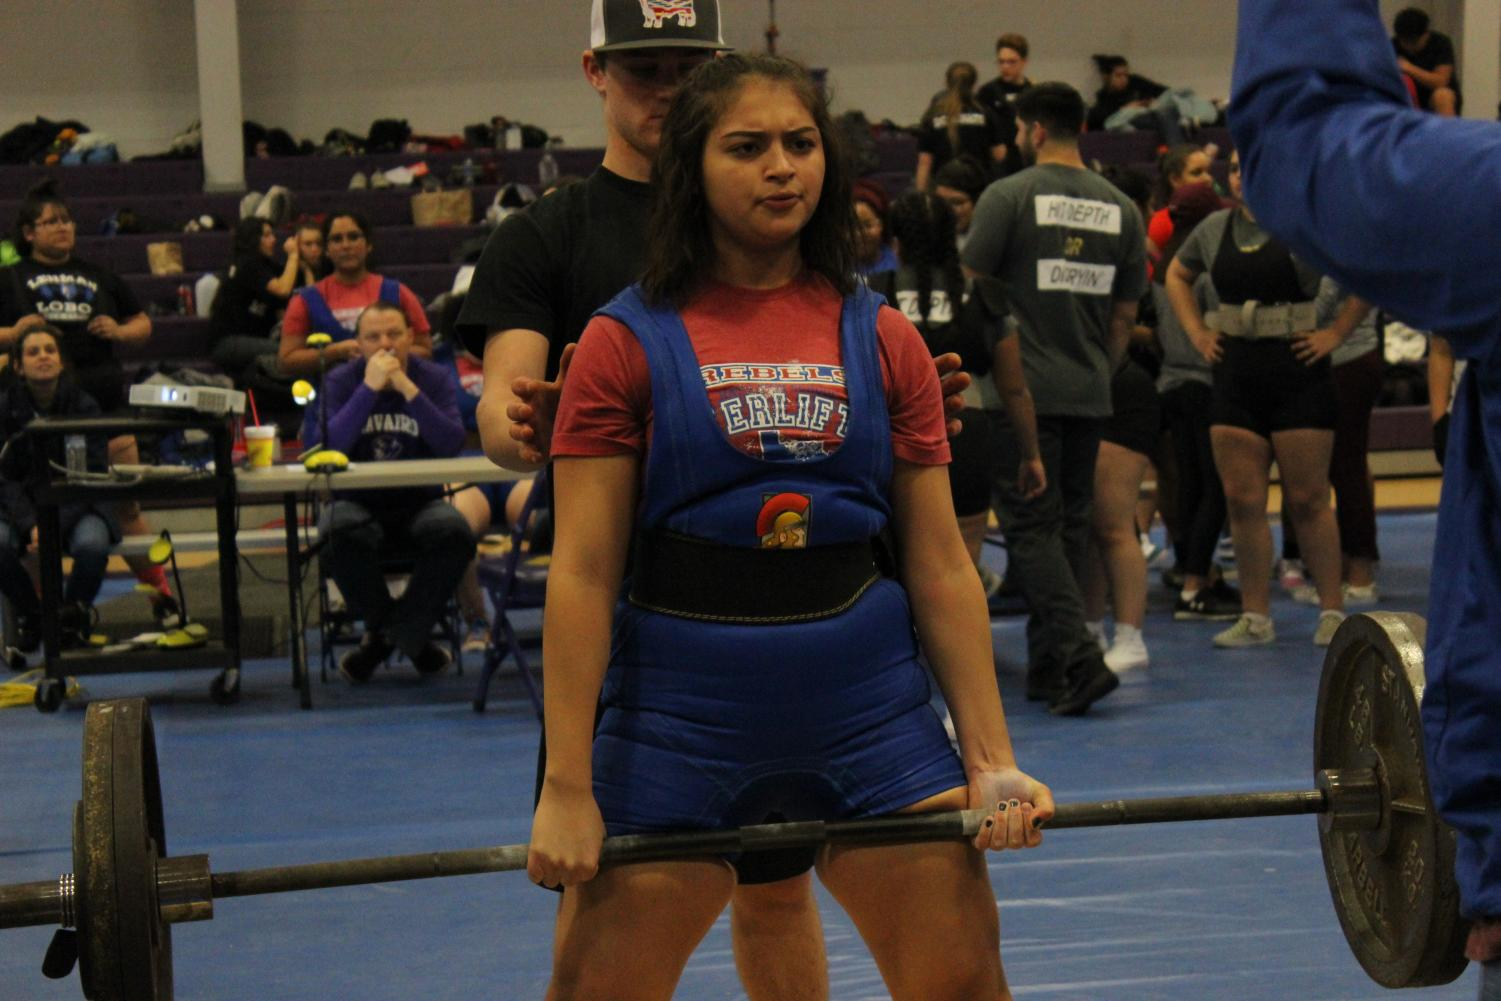 Lifting+like+a+Rebel.+The+powerlifting+team+had+their+first+meet+of+the+season+at+Navarro+High+School+on+January+12th.+Lifters+placed+in+multiple+weight+categories.+The+boys+team+got+2nd+place+just+under+Navarro.+%0A%22We%27ve+started+this+season+on+a+great+note+and+can+only+expect+to+see+improvement%2C%22+said+Hays+coach+Aaron+Postert.